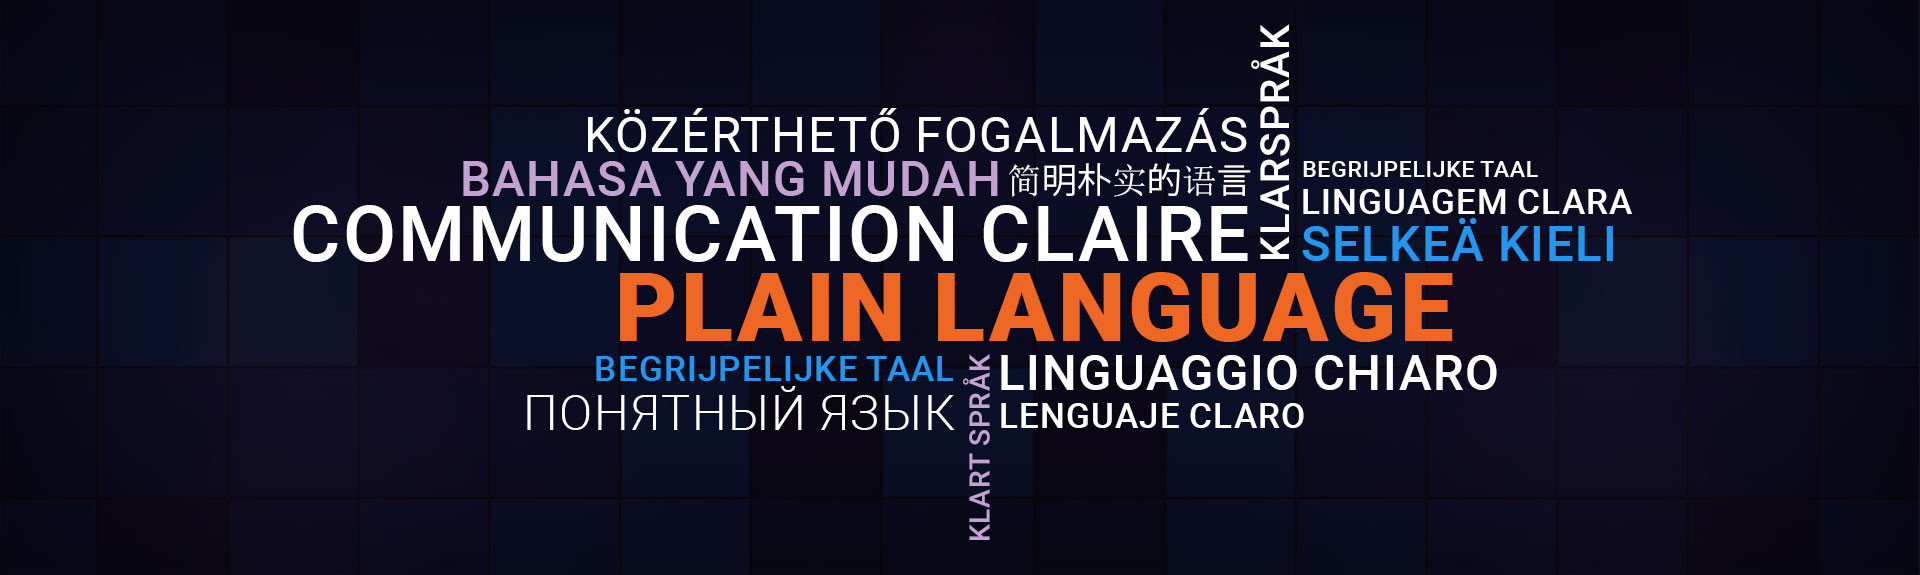 Plain language in different languages